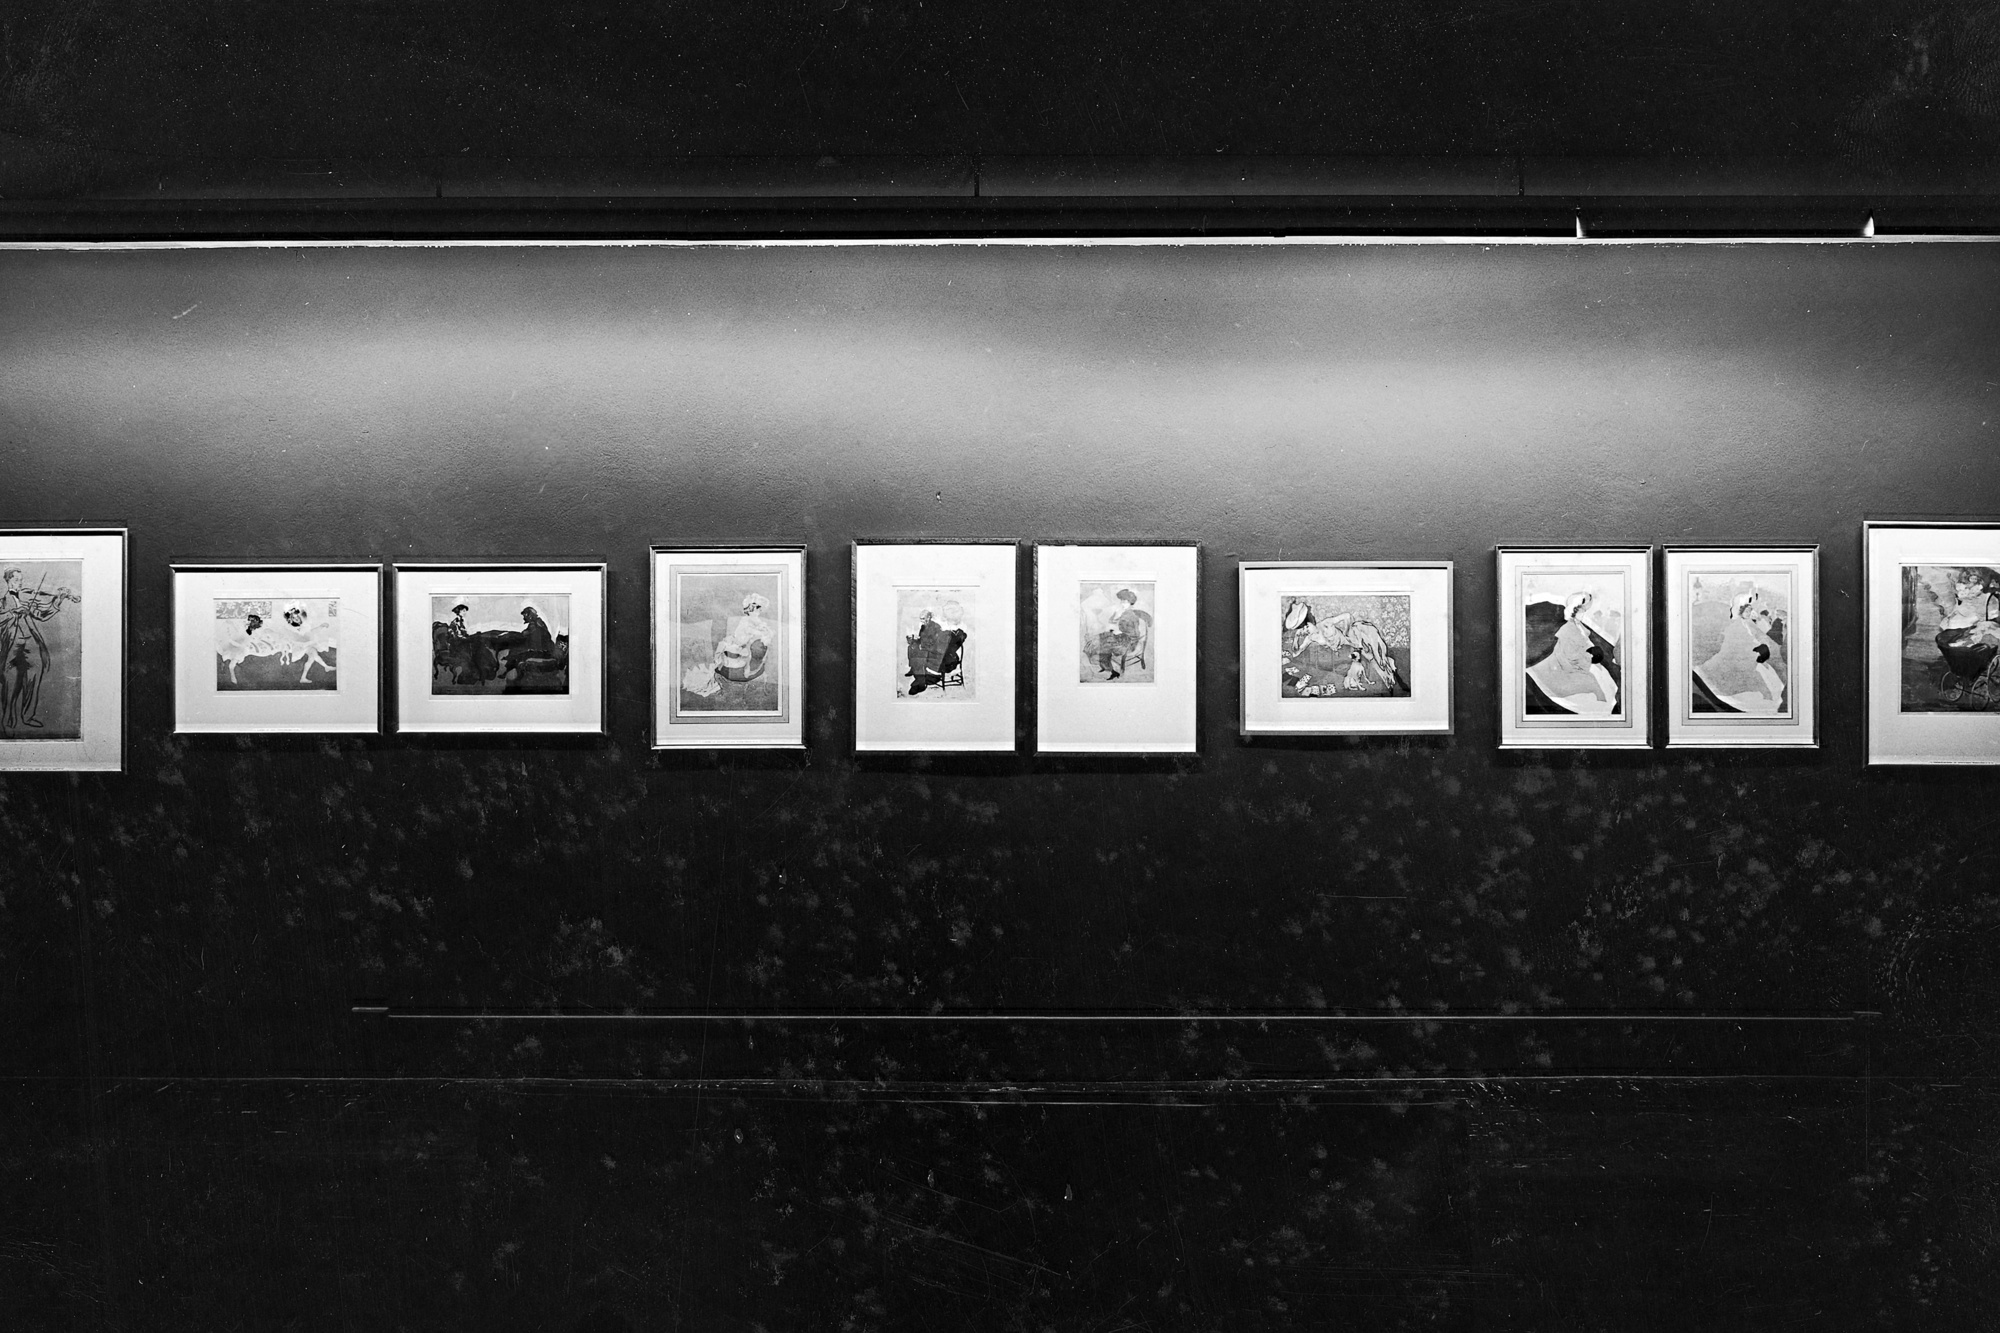 Installation view of Jacques Villon: His Graphic Art at The Museum of Modern Art, New York. Photo: Soichi Sunami